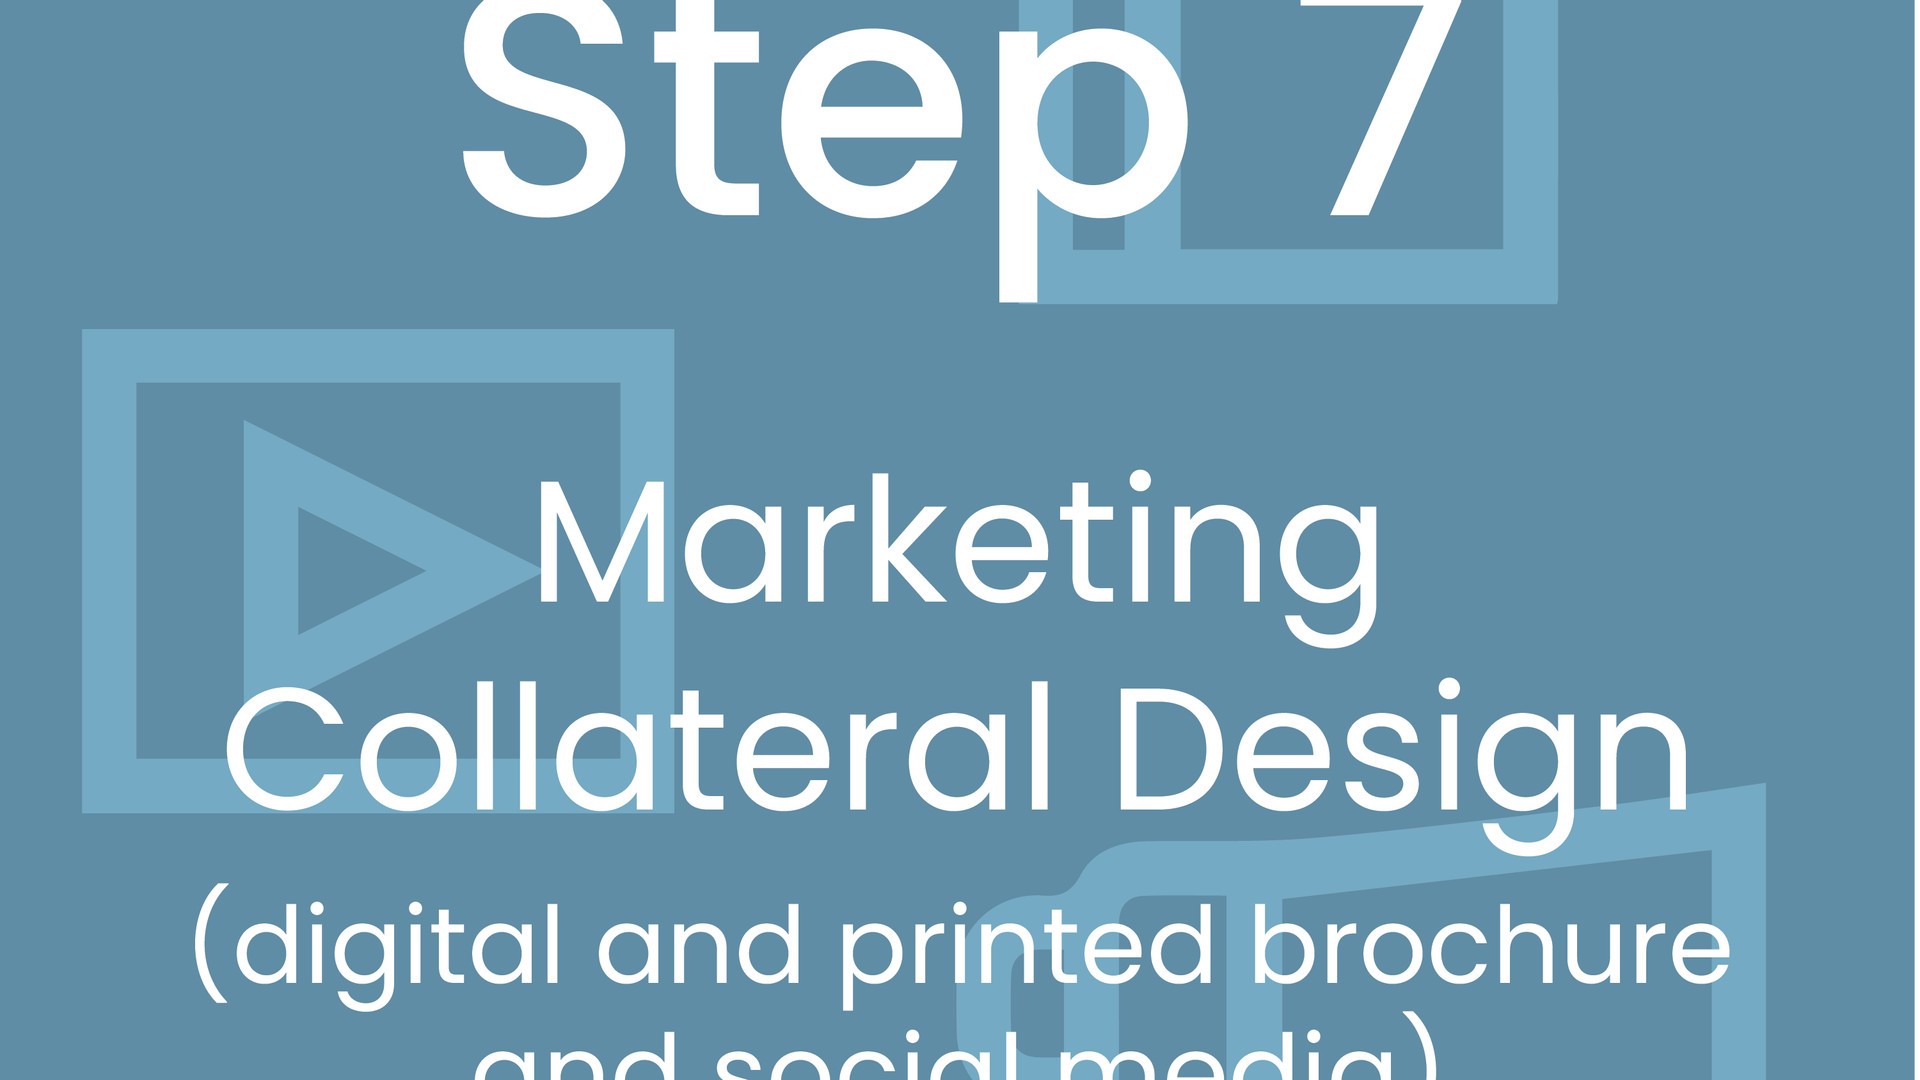 Step 7: Marketing Collateral Design